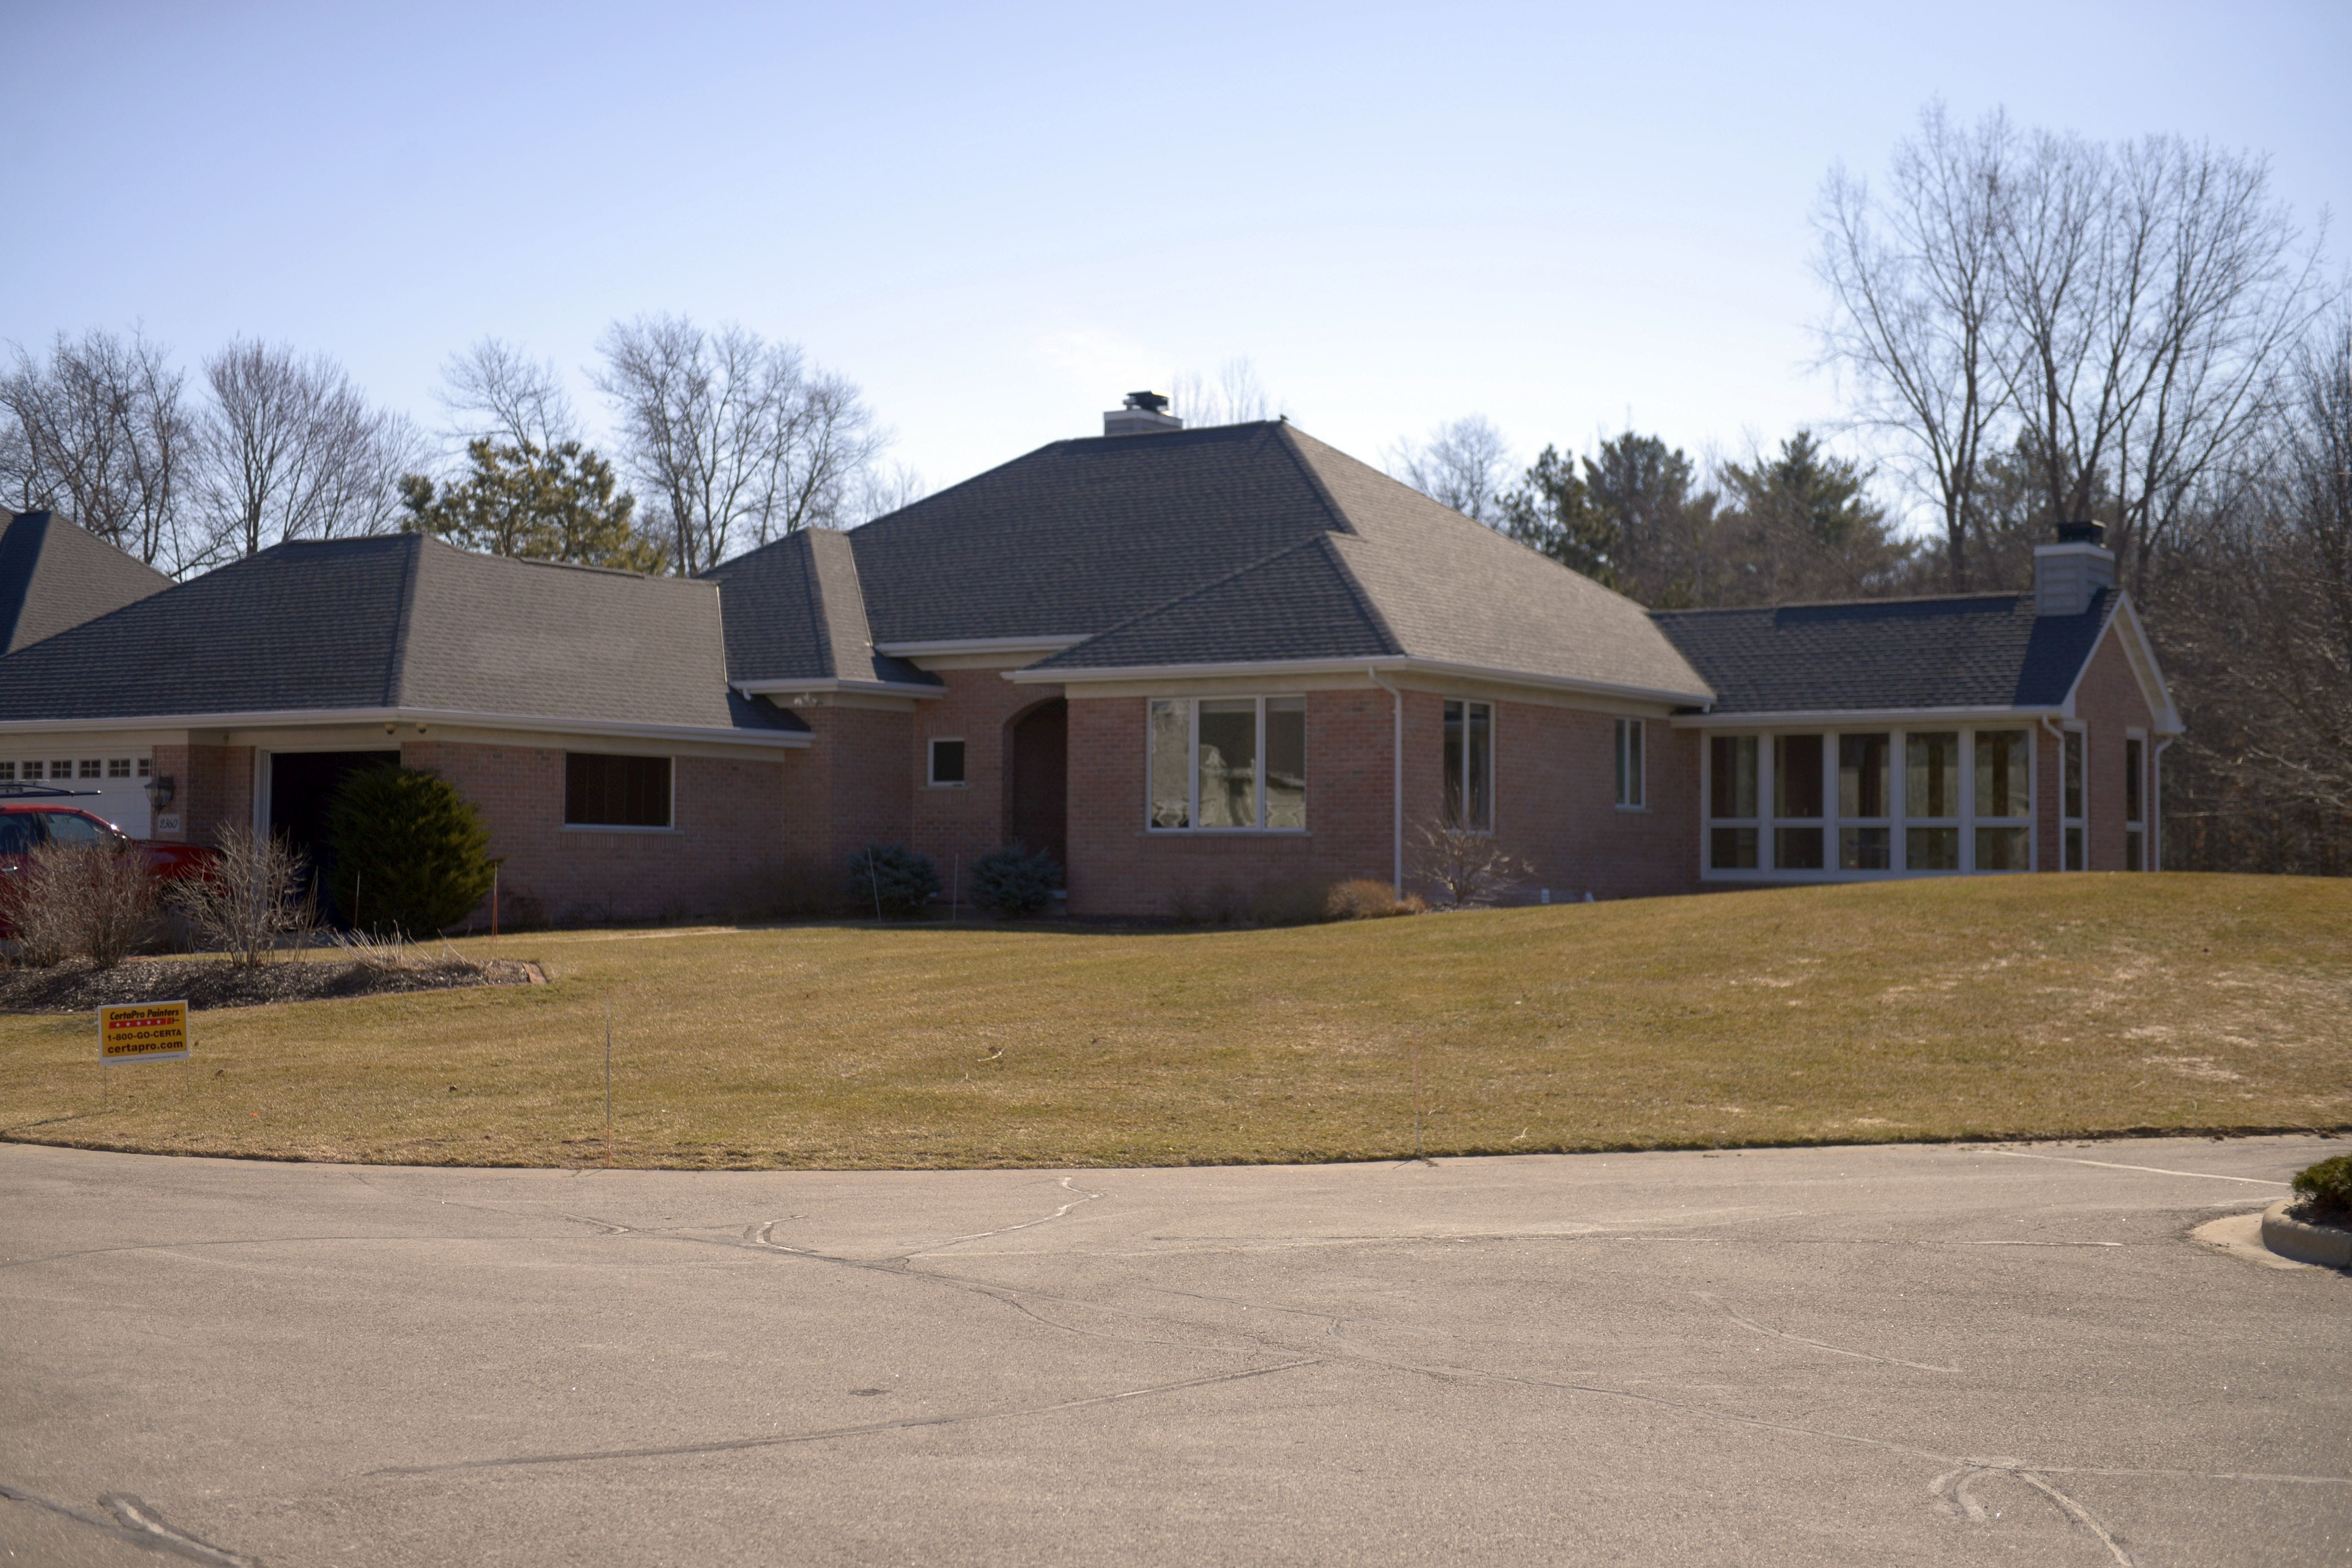 Is Aaron Rodgers' Suamico house for sale?